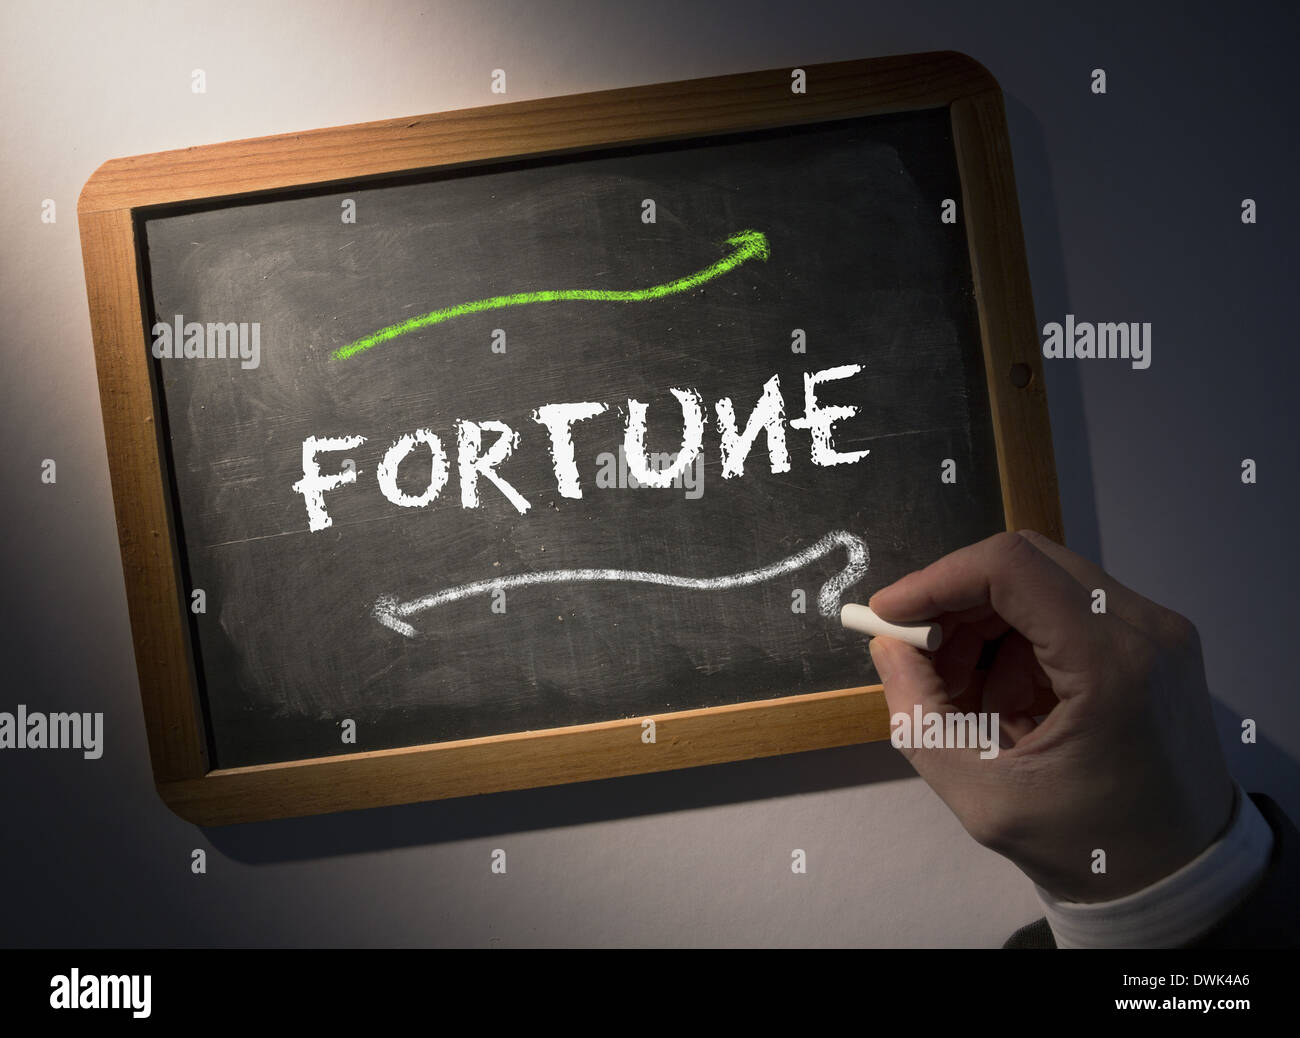 Hand writing Fortune on chalkboard - Stock Image